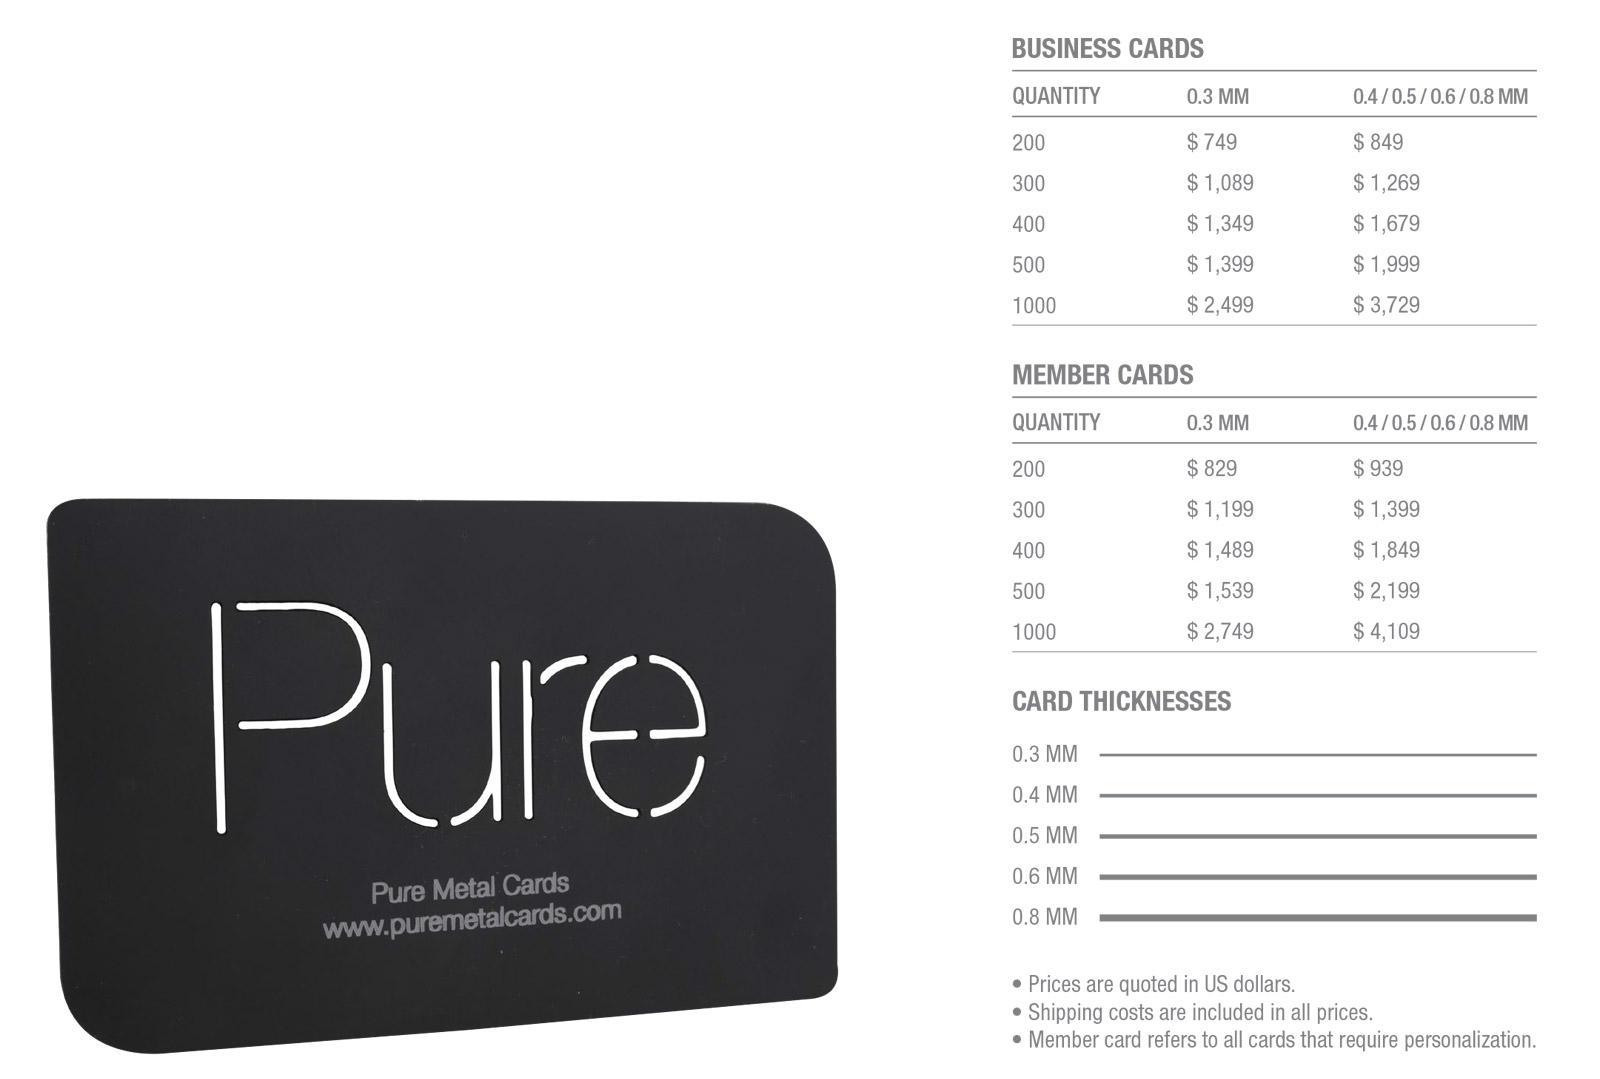 Matt-Black-Stainless-Steel-Cards-Pricing-Table